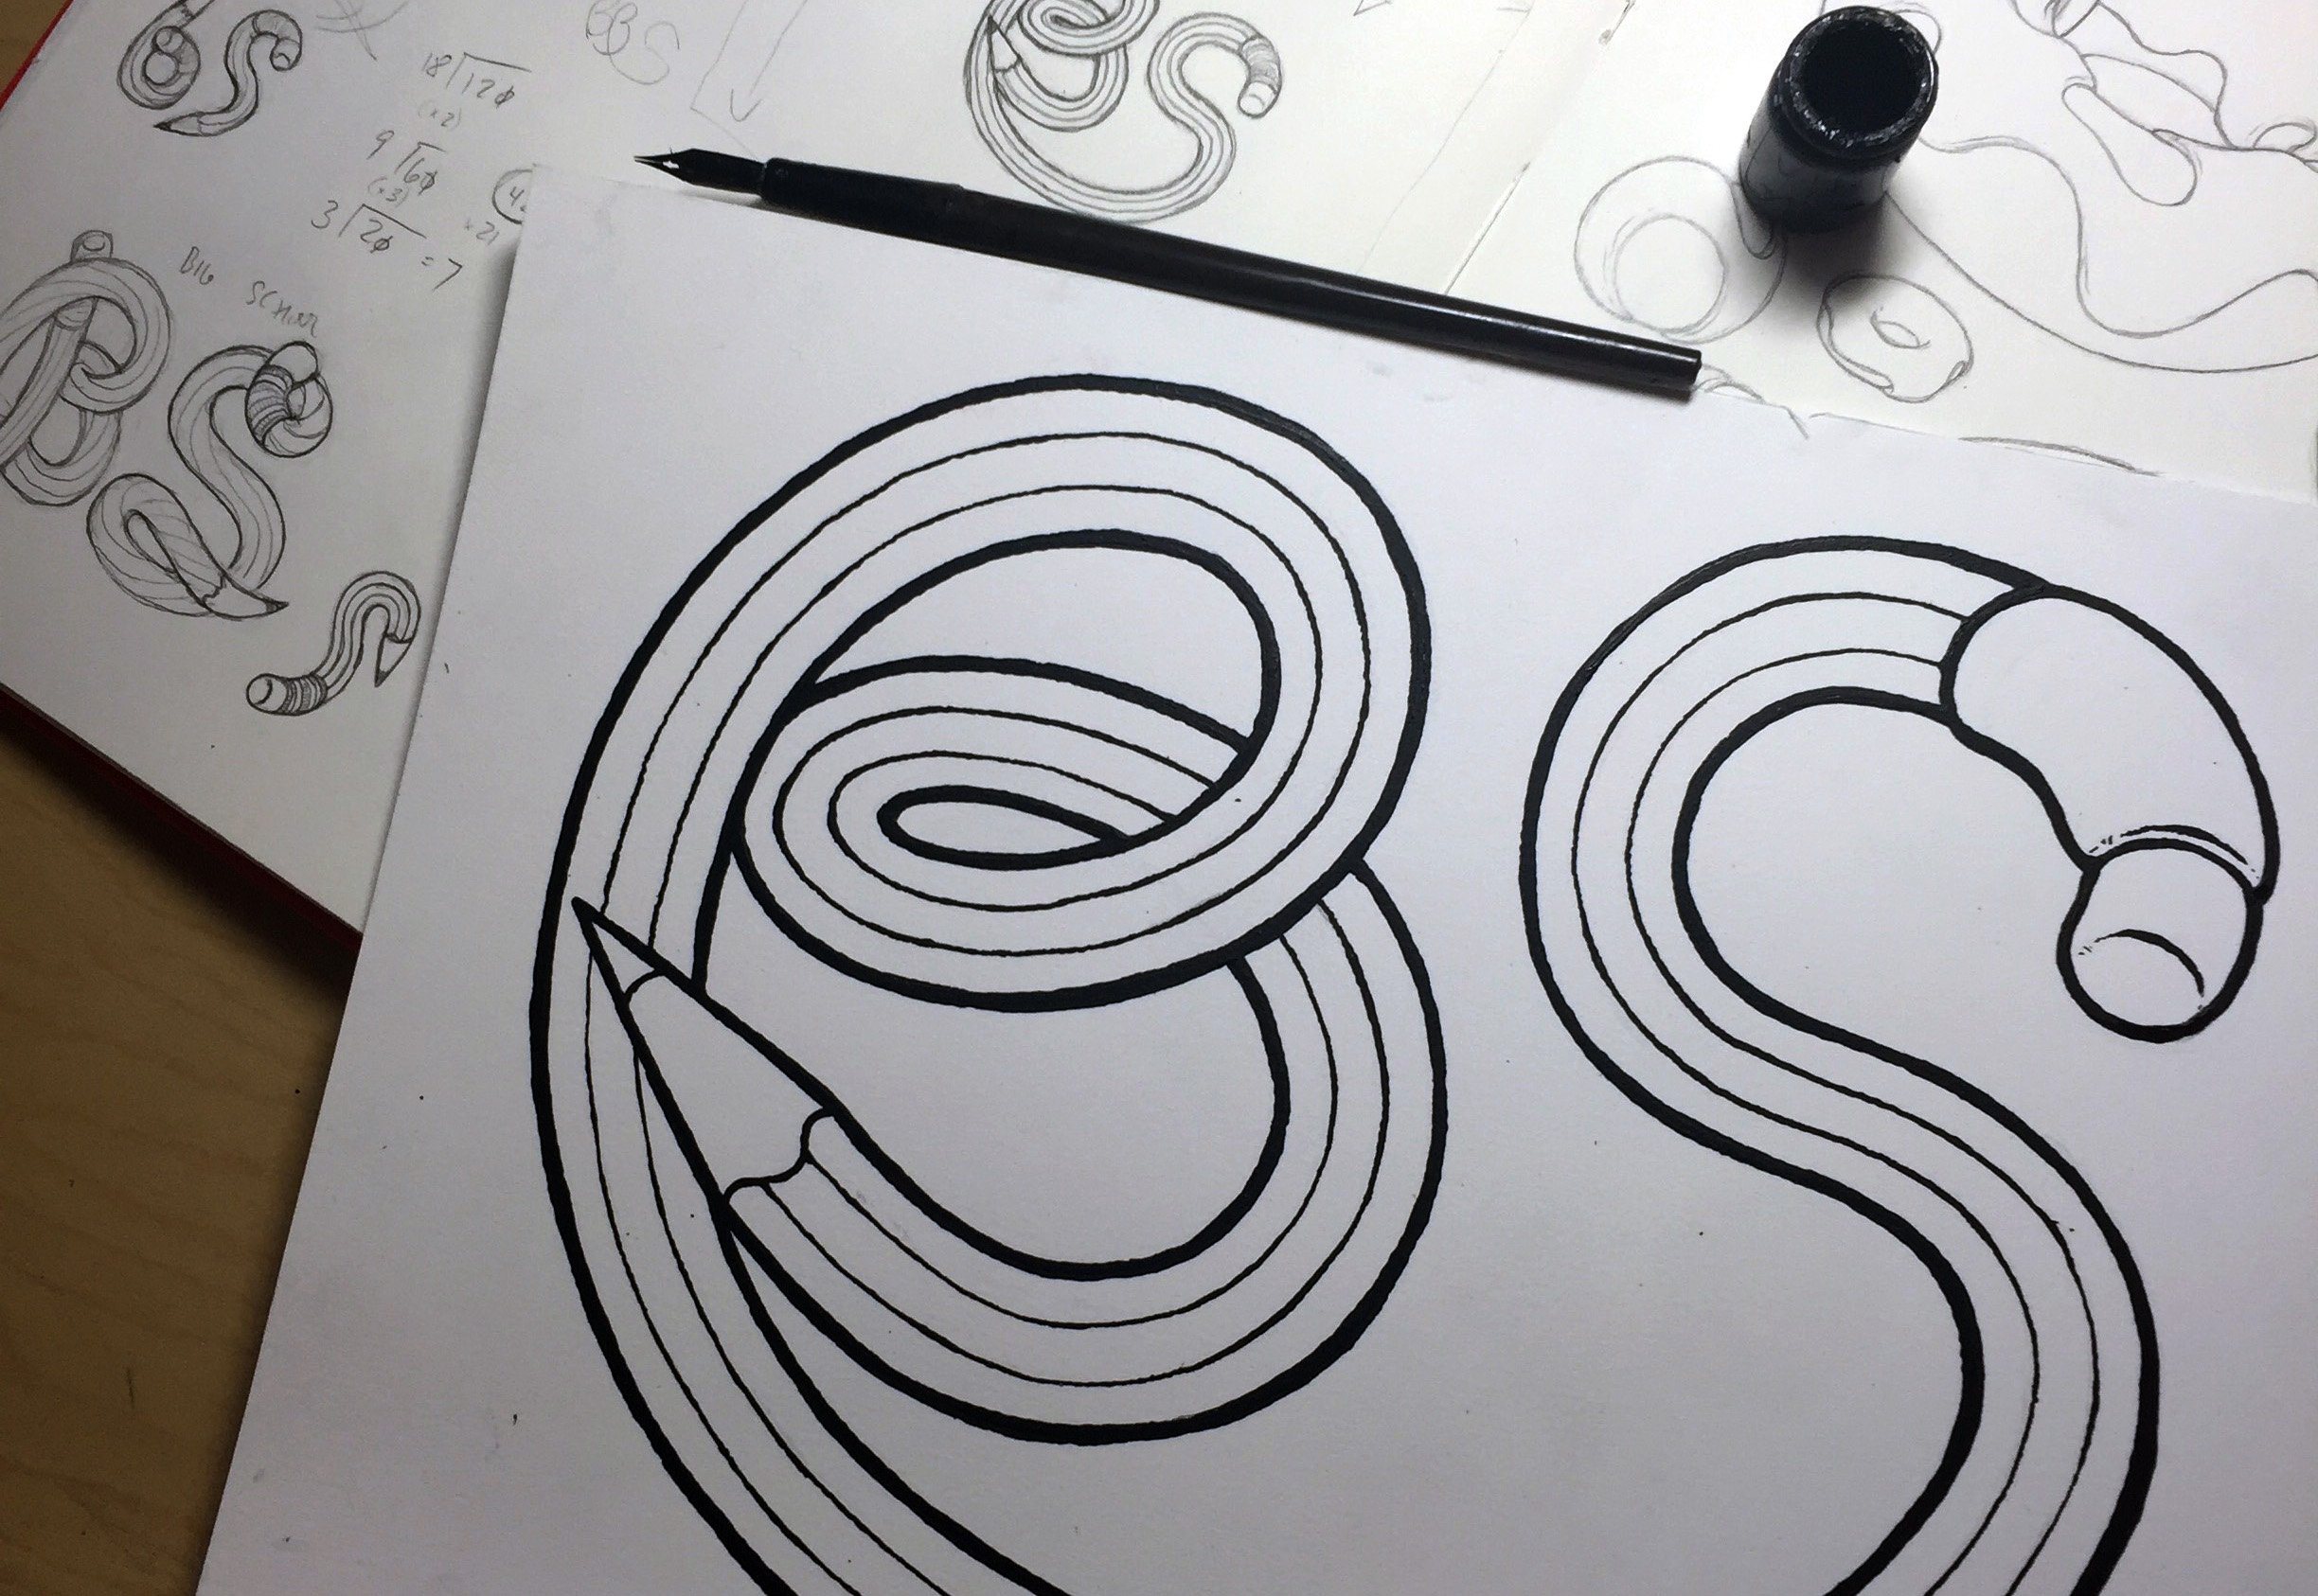 inking the BS logo with sketches behind it